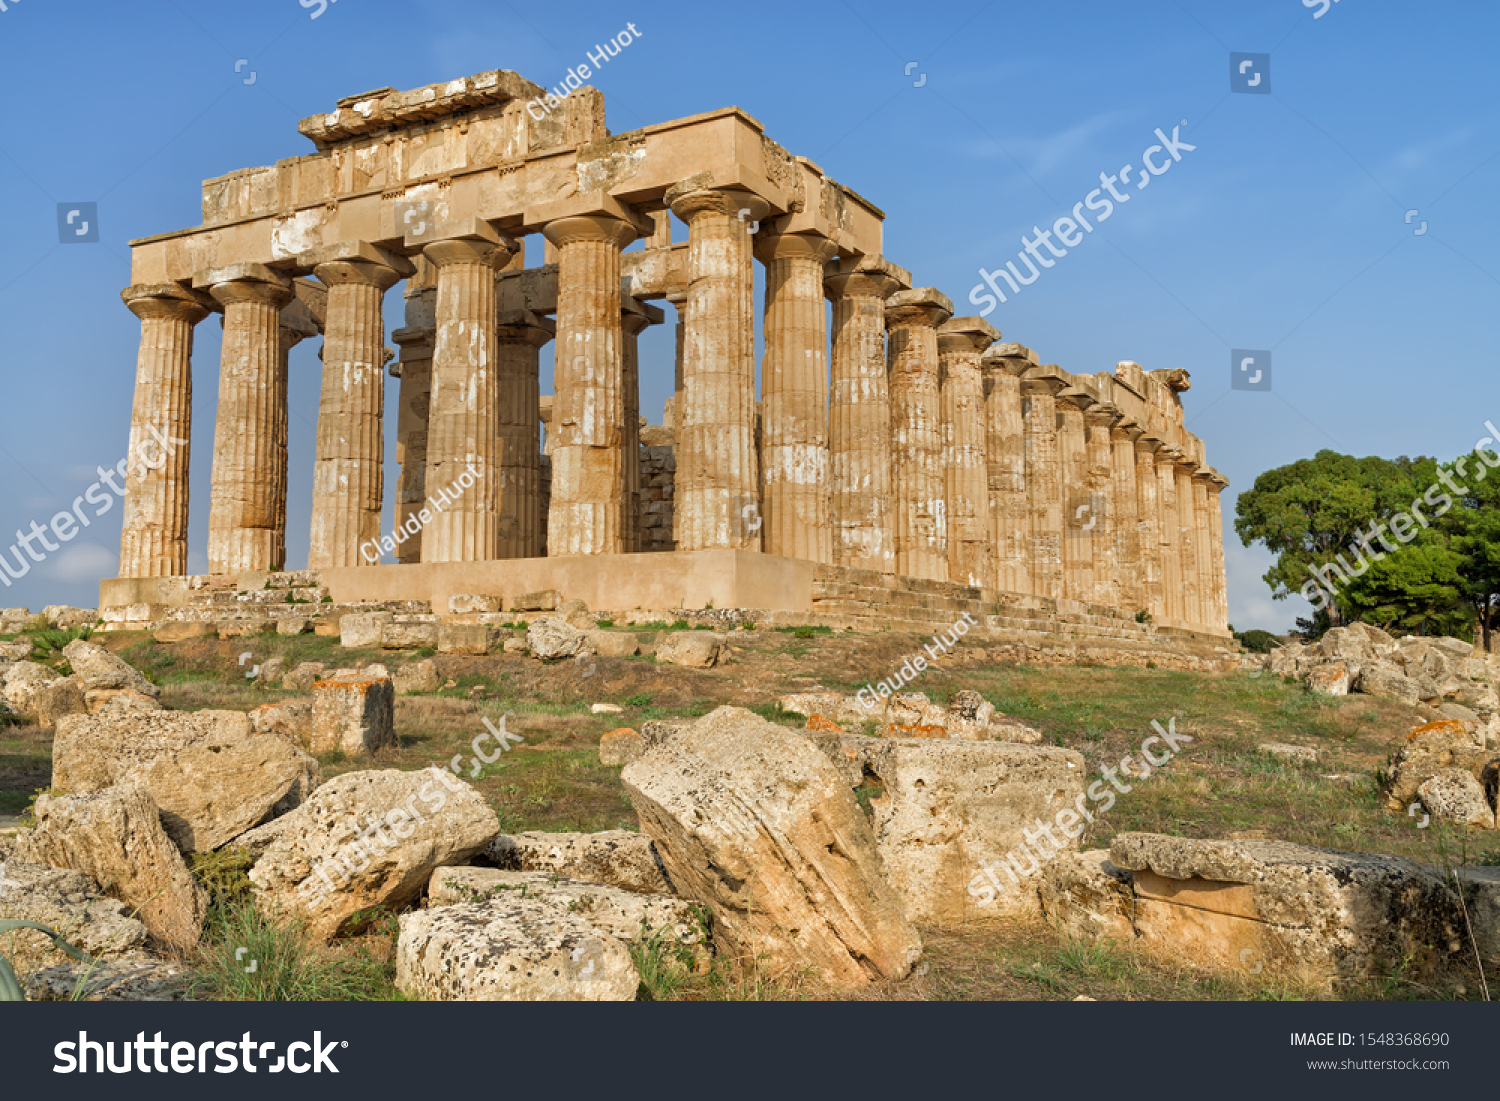 Back of the Doric Greek Temple of Hera, known as Temple E, in the Selinunte Archaeological Park, Sicily. It was built in the fifth century BC and is the best conserved of the temples in the Park.